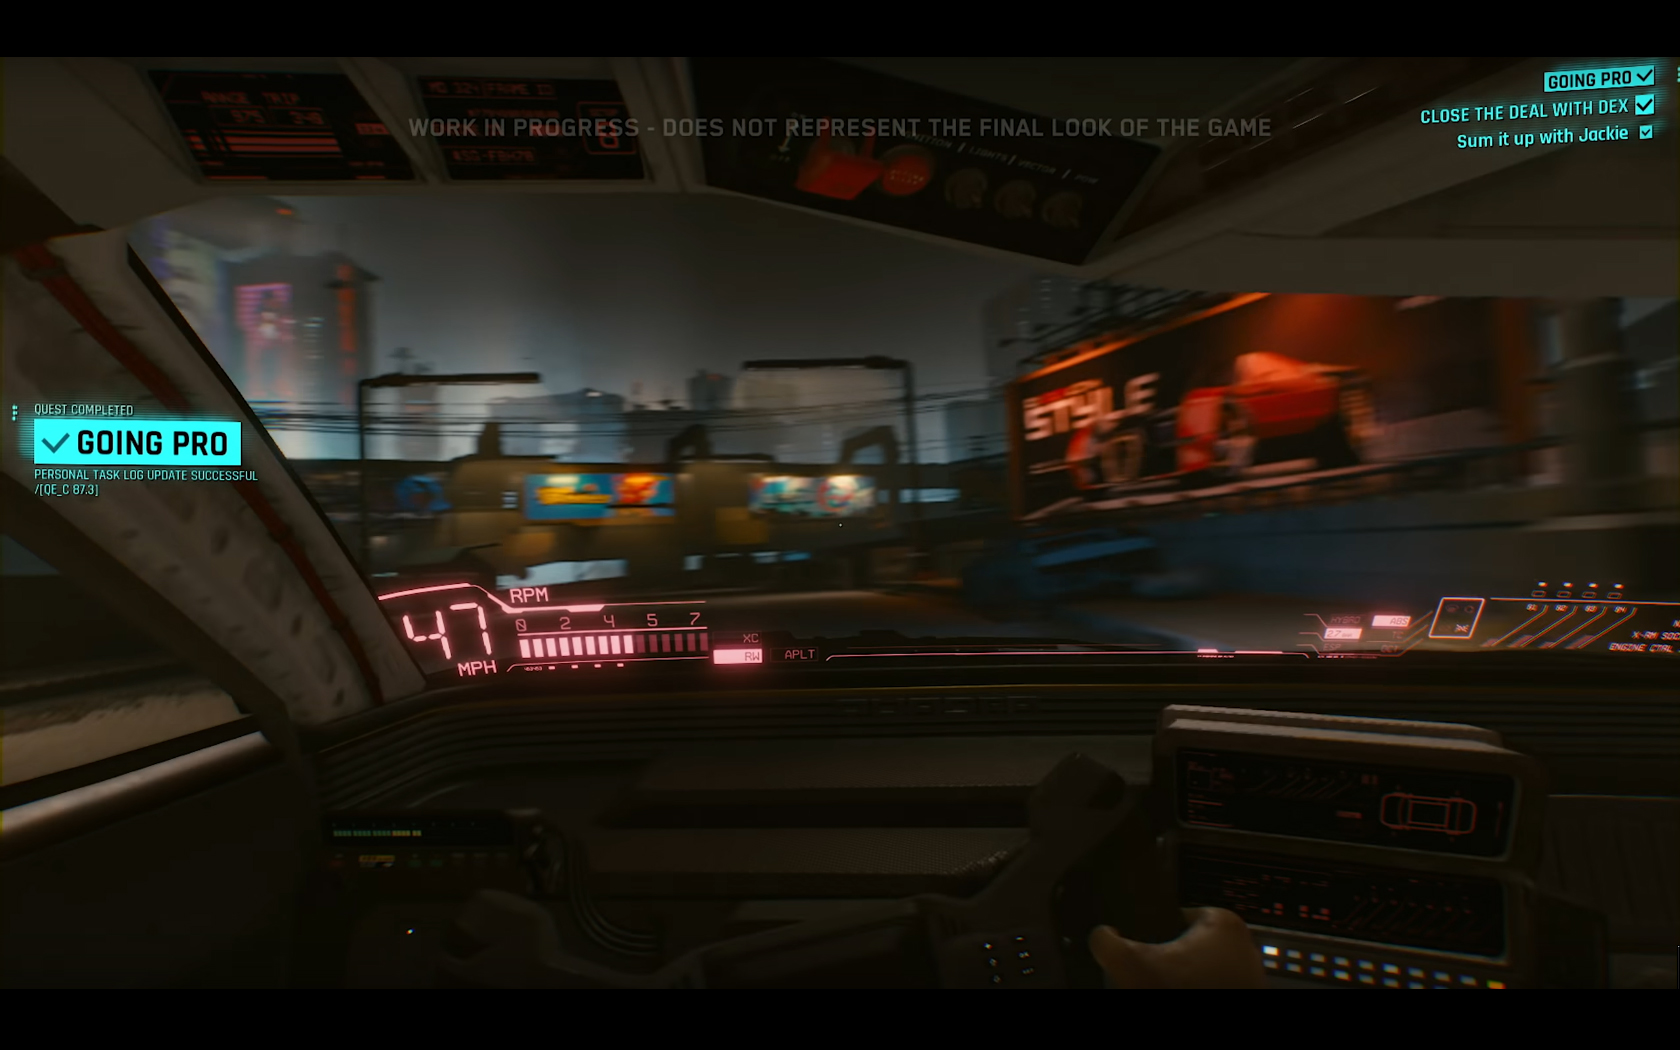 CD Projekt Red - Cyberpunk 2077 - video reveal gameplay - 2018 - screen - sports car QUADRA - onboard